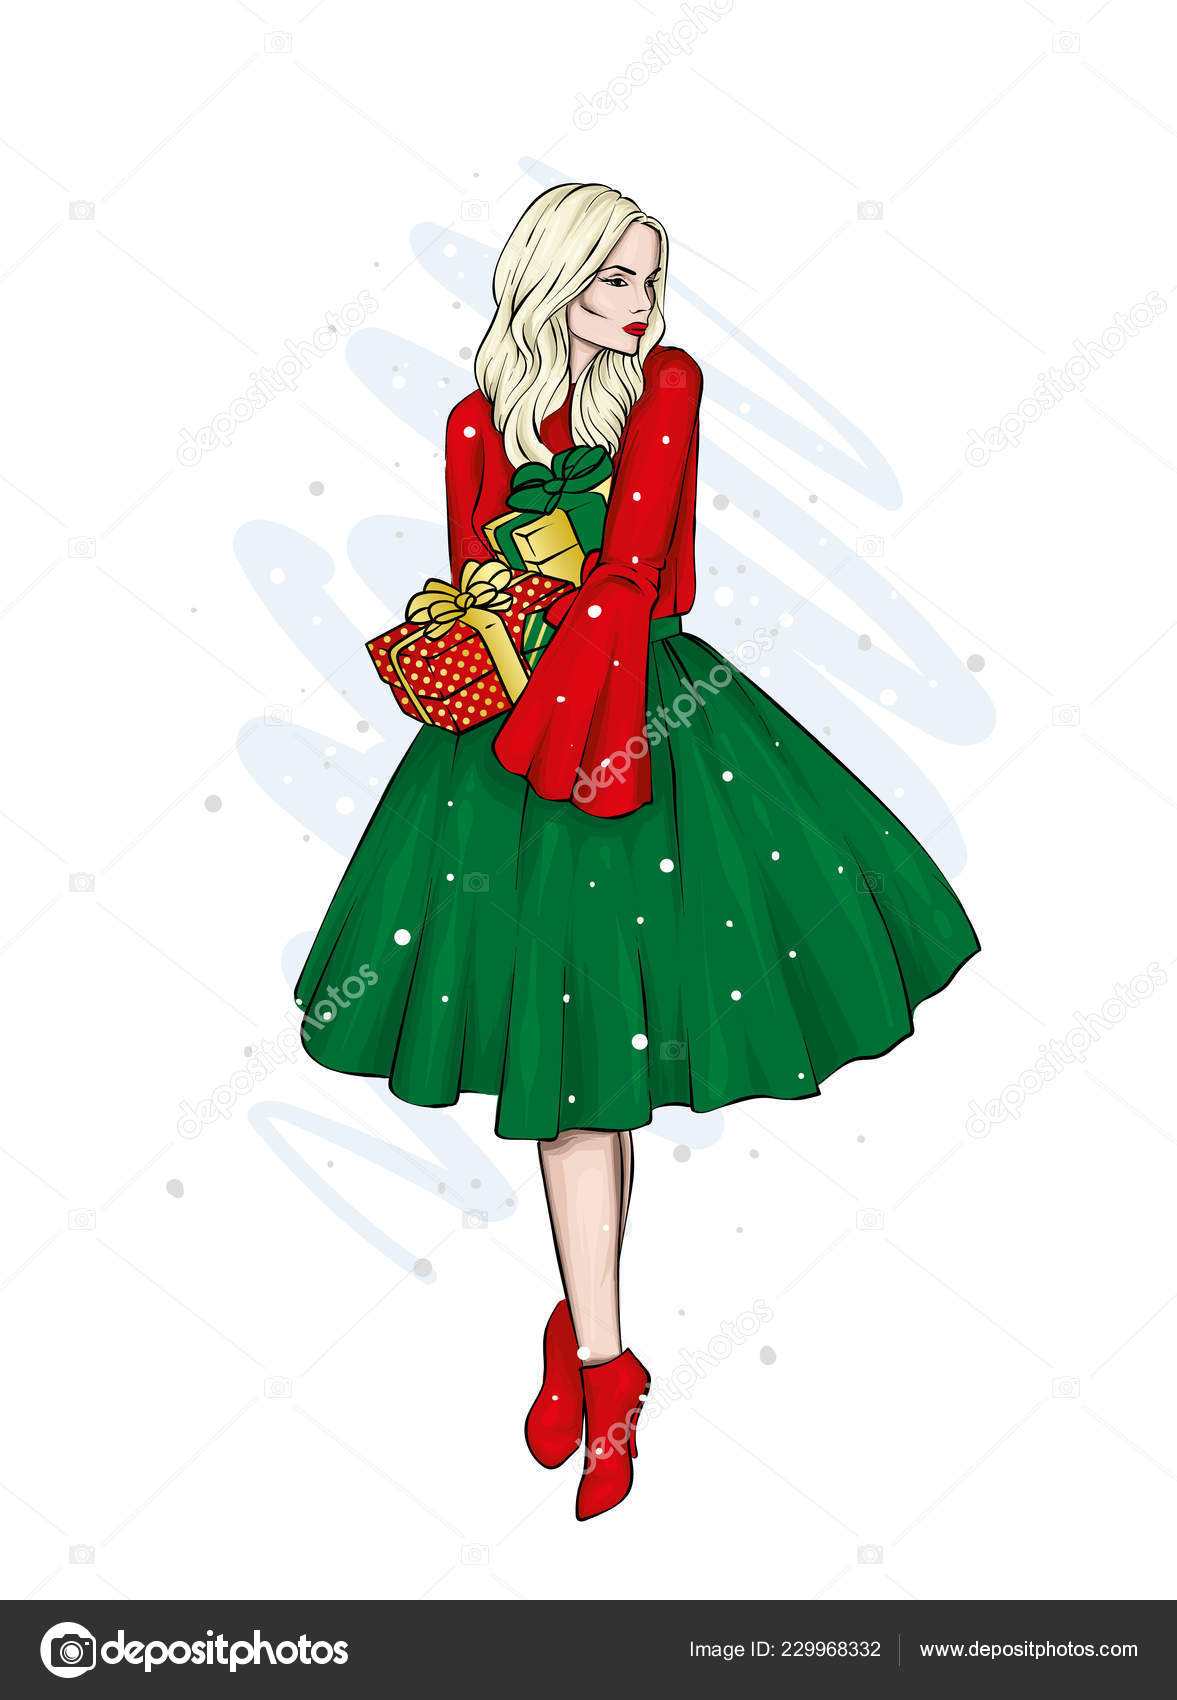 12234669d2 A girl in a beautiful vintage dress. Vector illustration. Clothing and  accessories